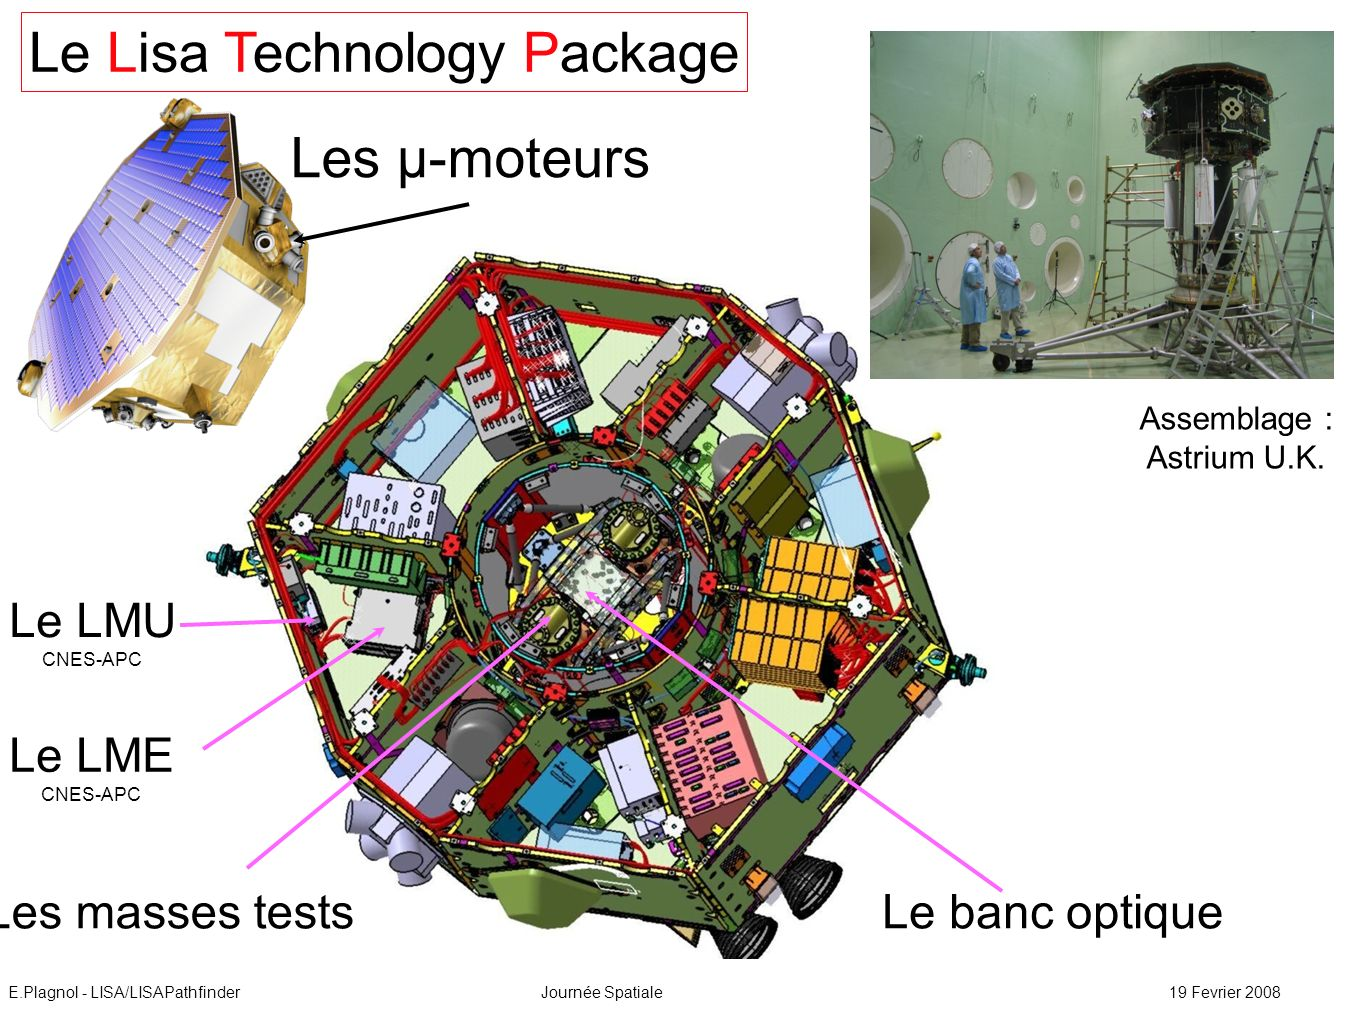 Le Lisa Technology Package